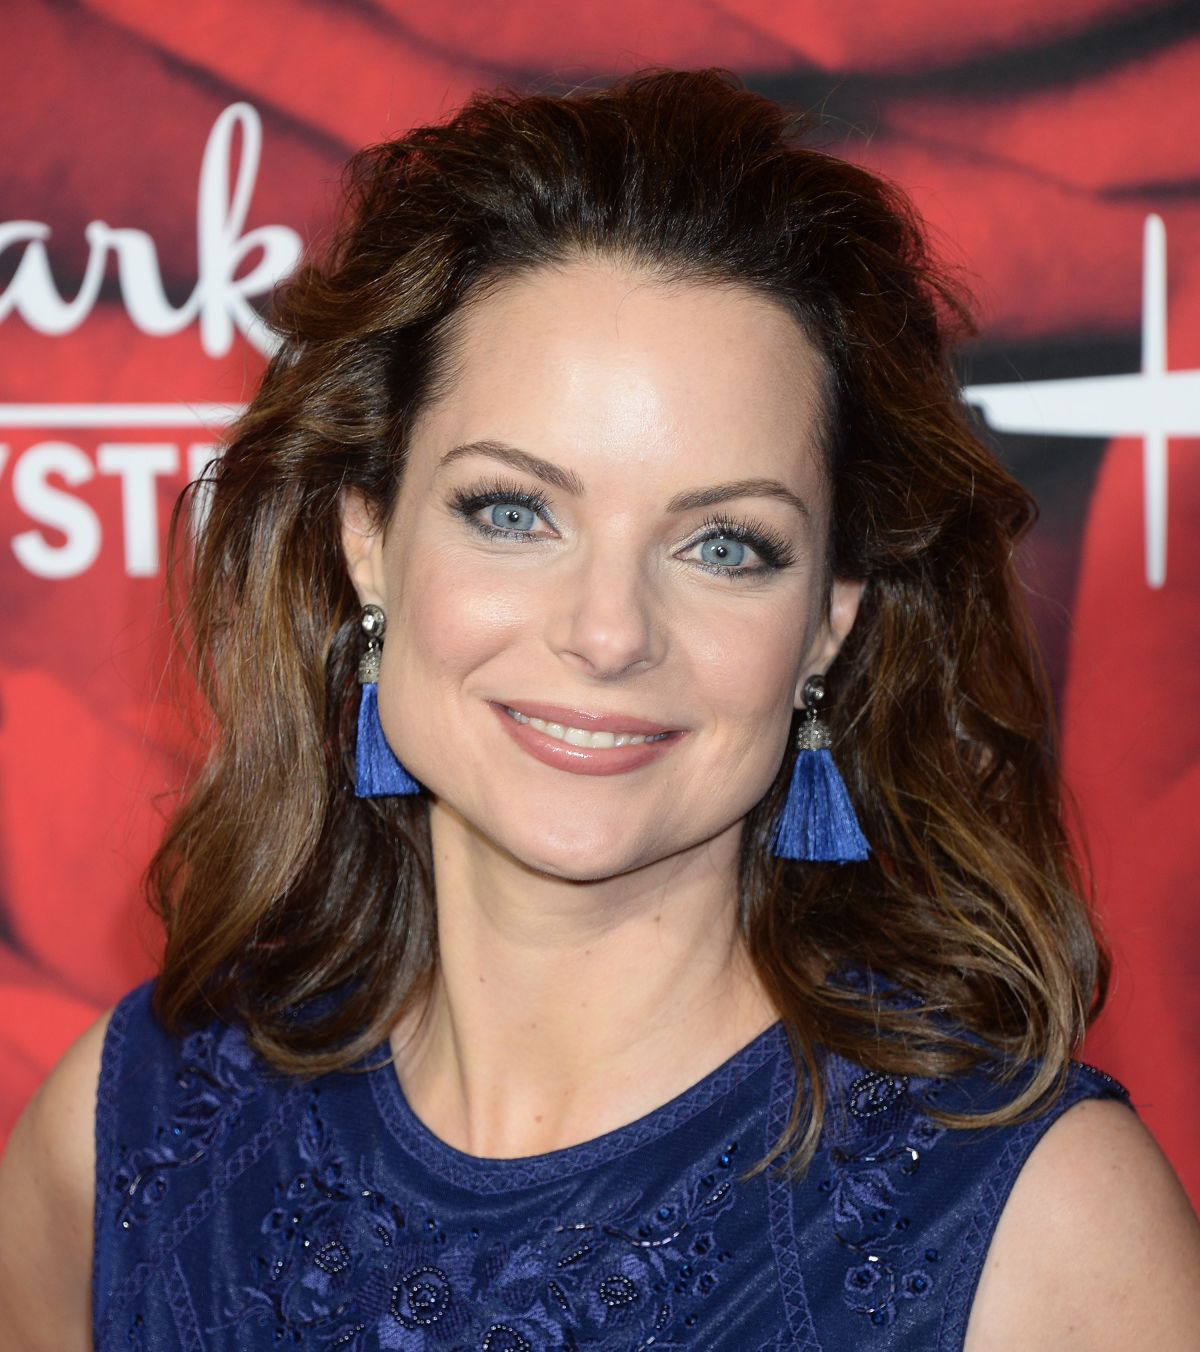 KIMBERLY WILLIAMS-PAISLEY at Hallmark Channel 2017 TCA Winter Press Tour in Pasadena 01/14/2017